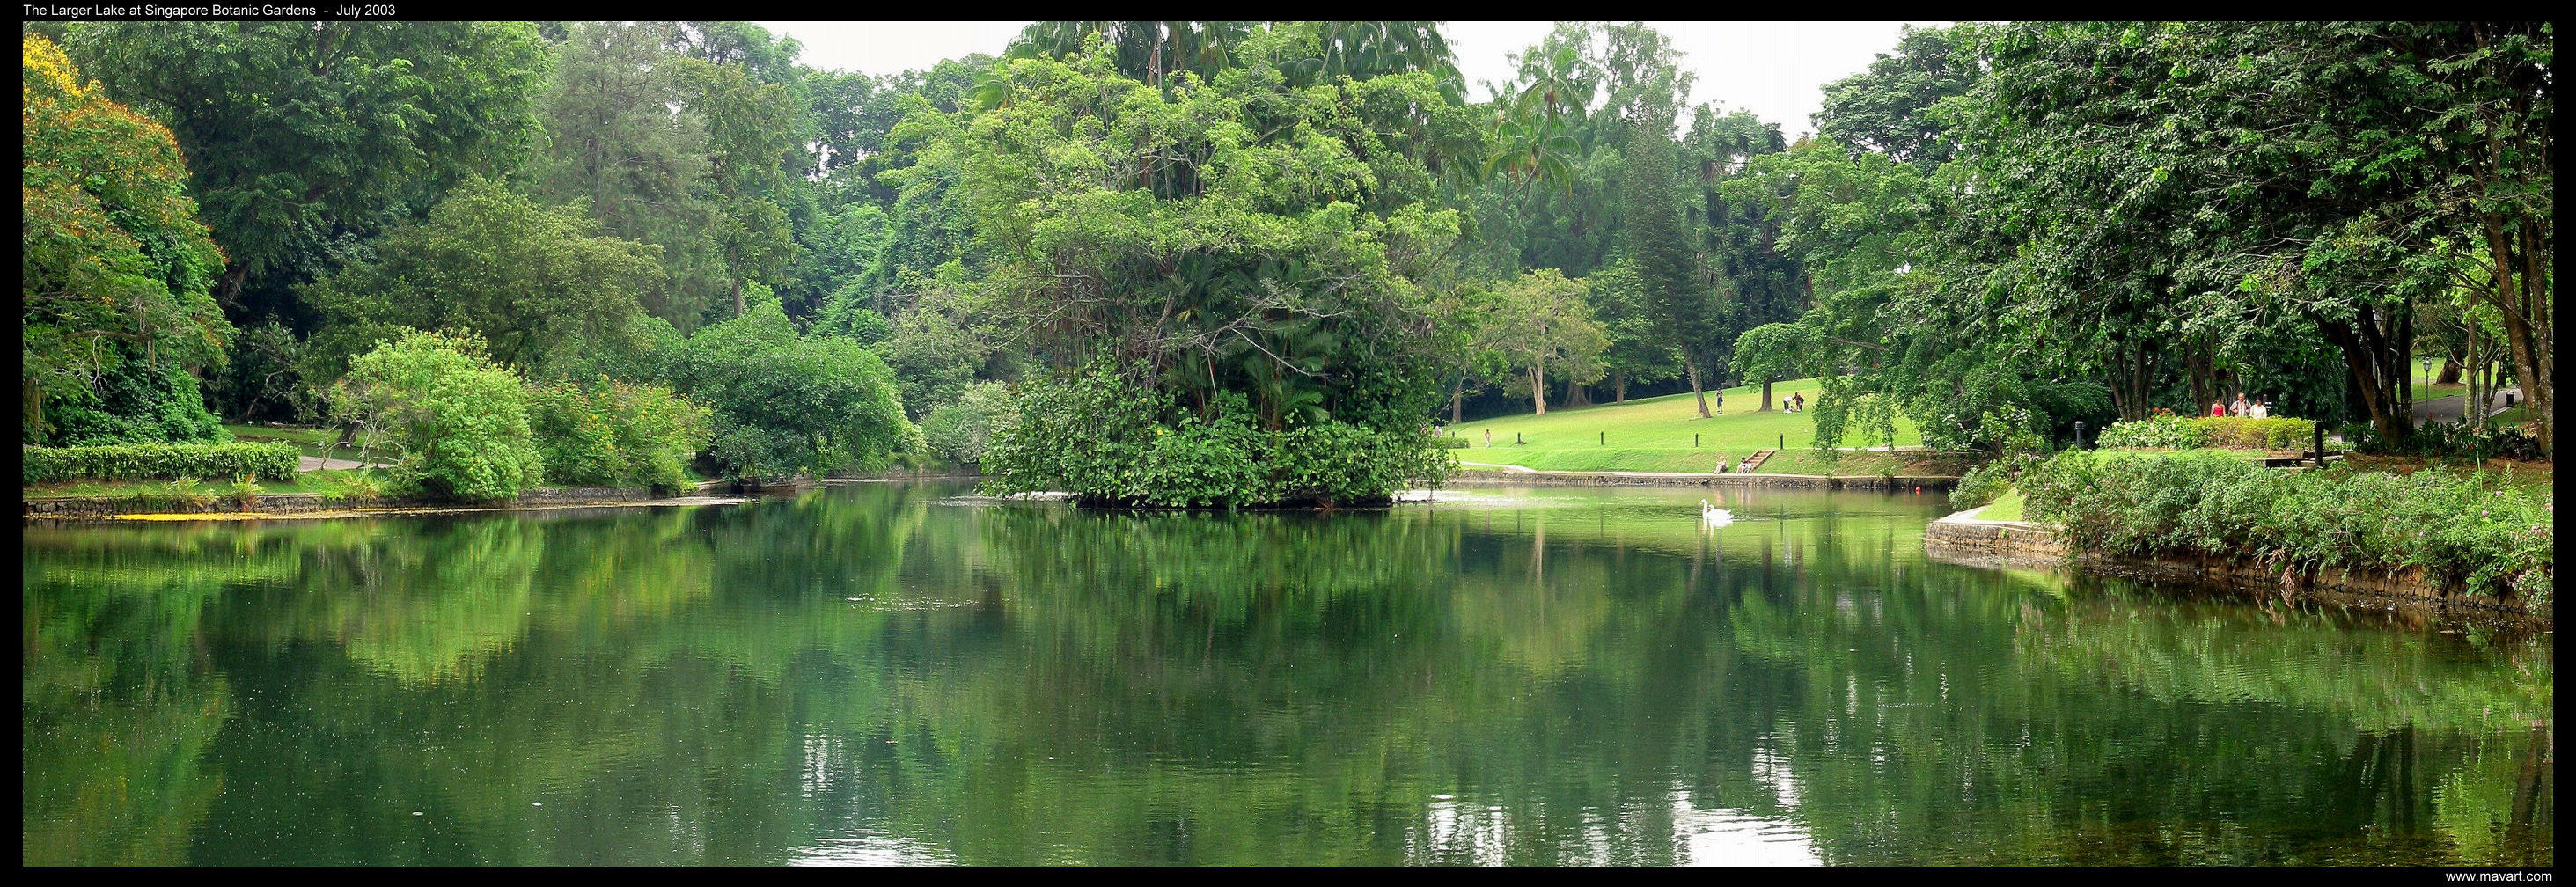 Singapore Botanic Gardens Lake by mavart